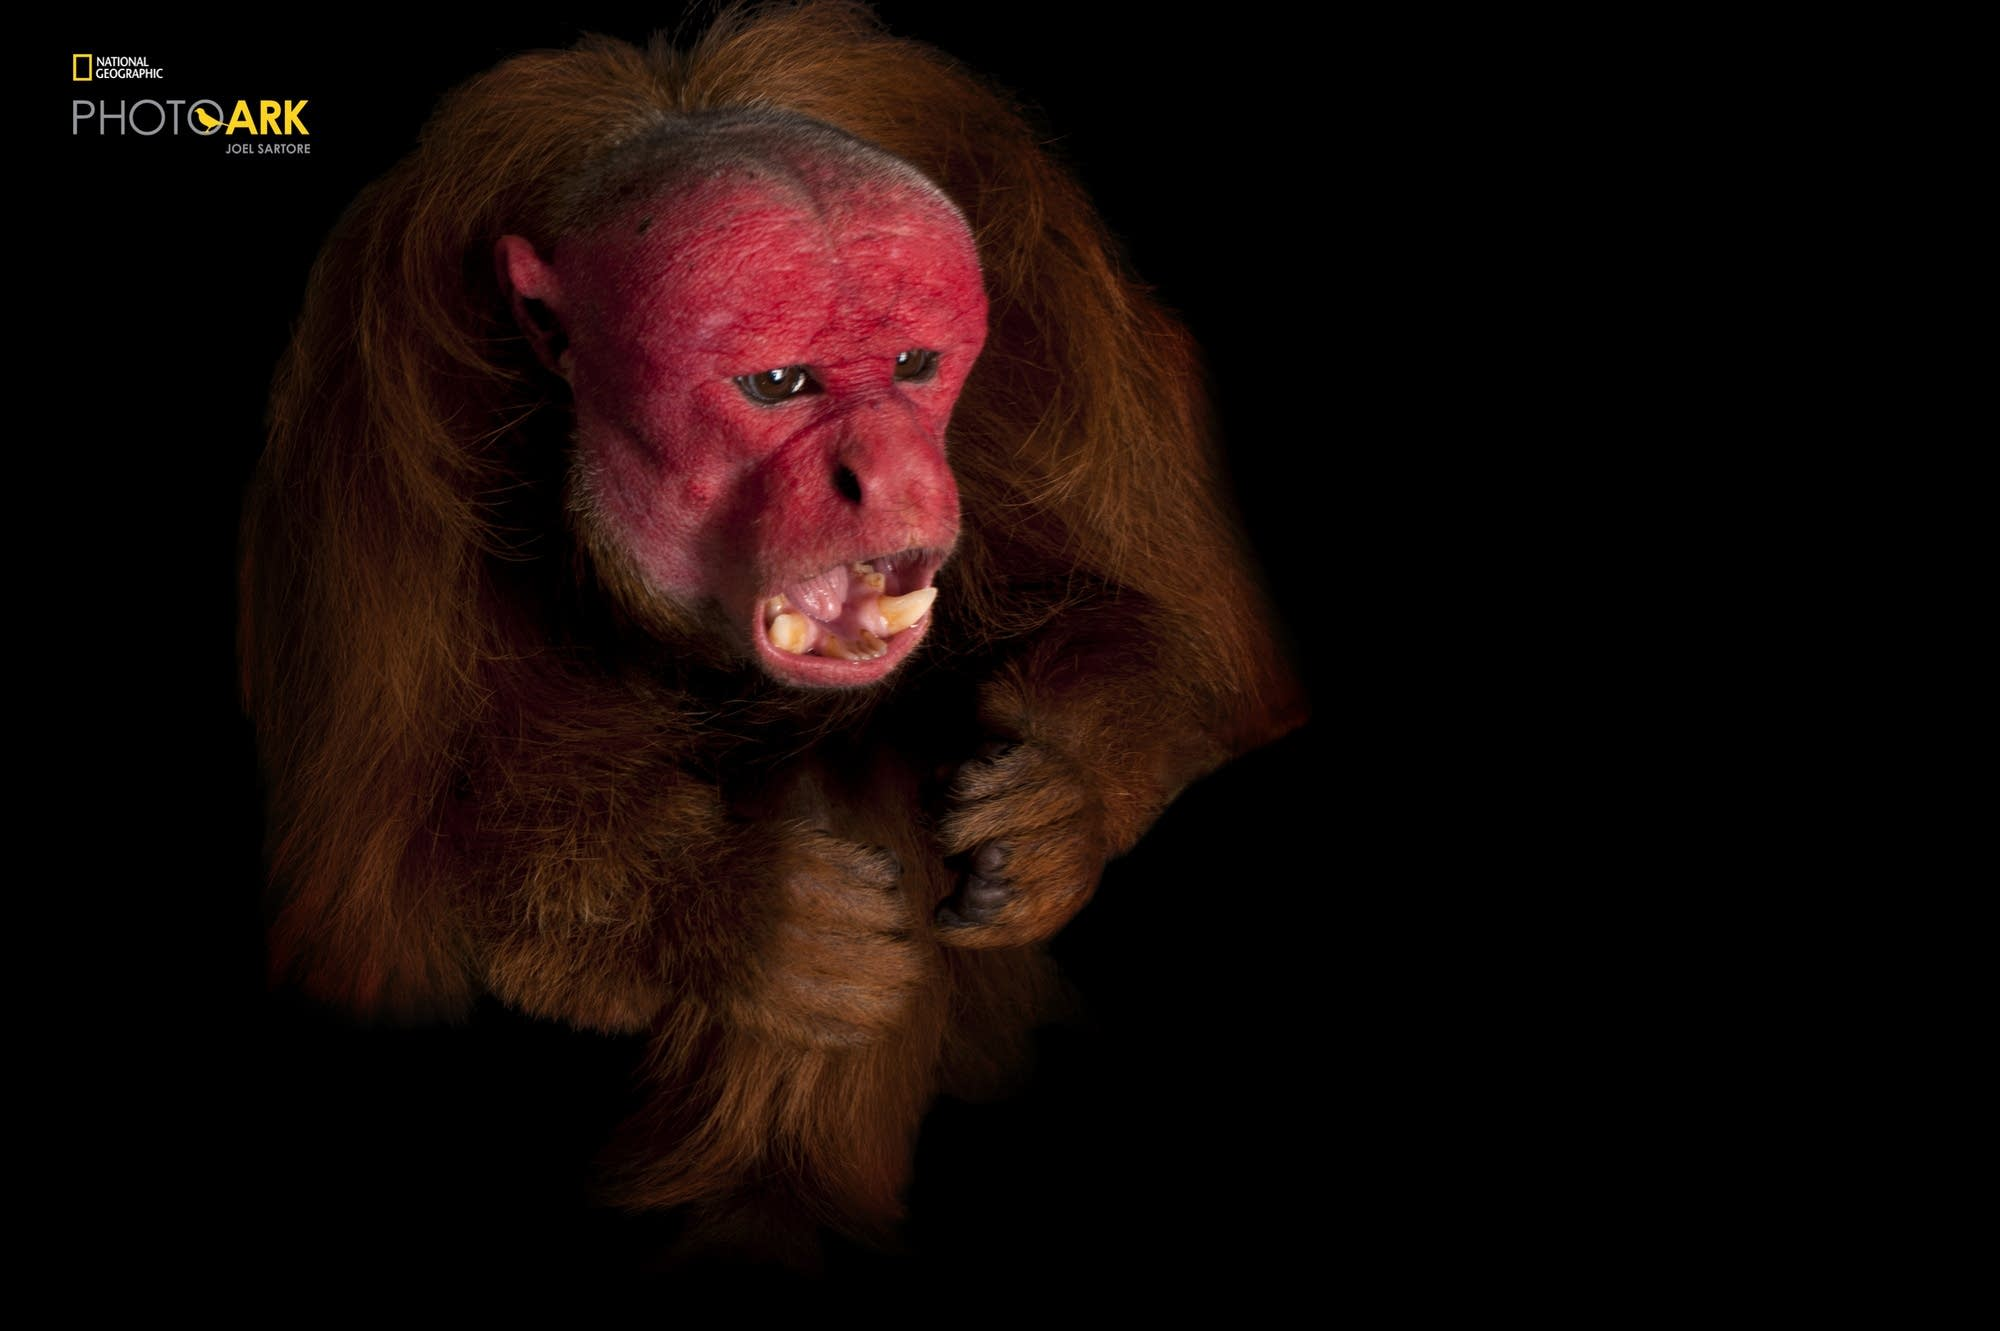 A rare red uakari monkey, Cacajao calvus, at Los Angeles Zoo.